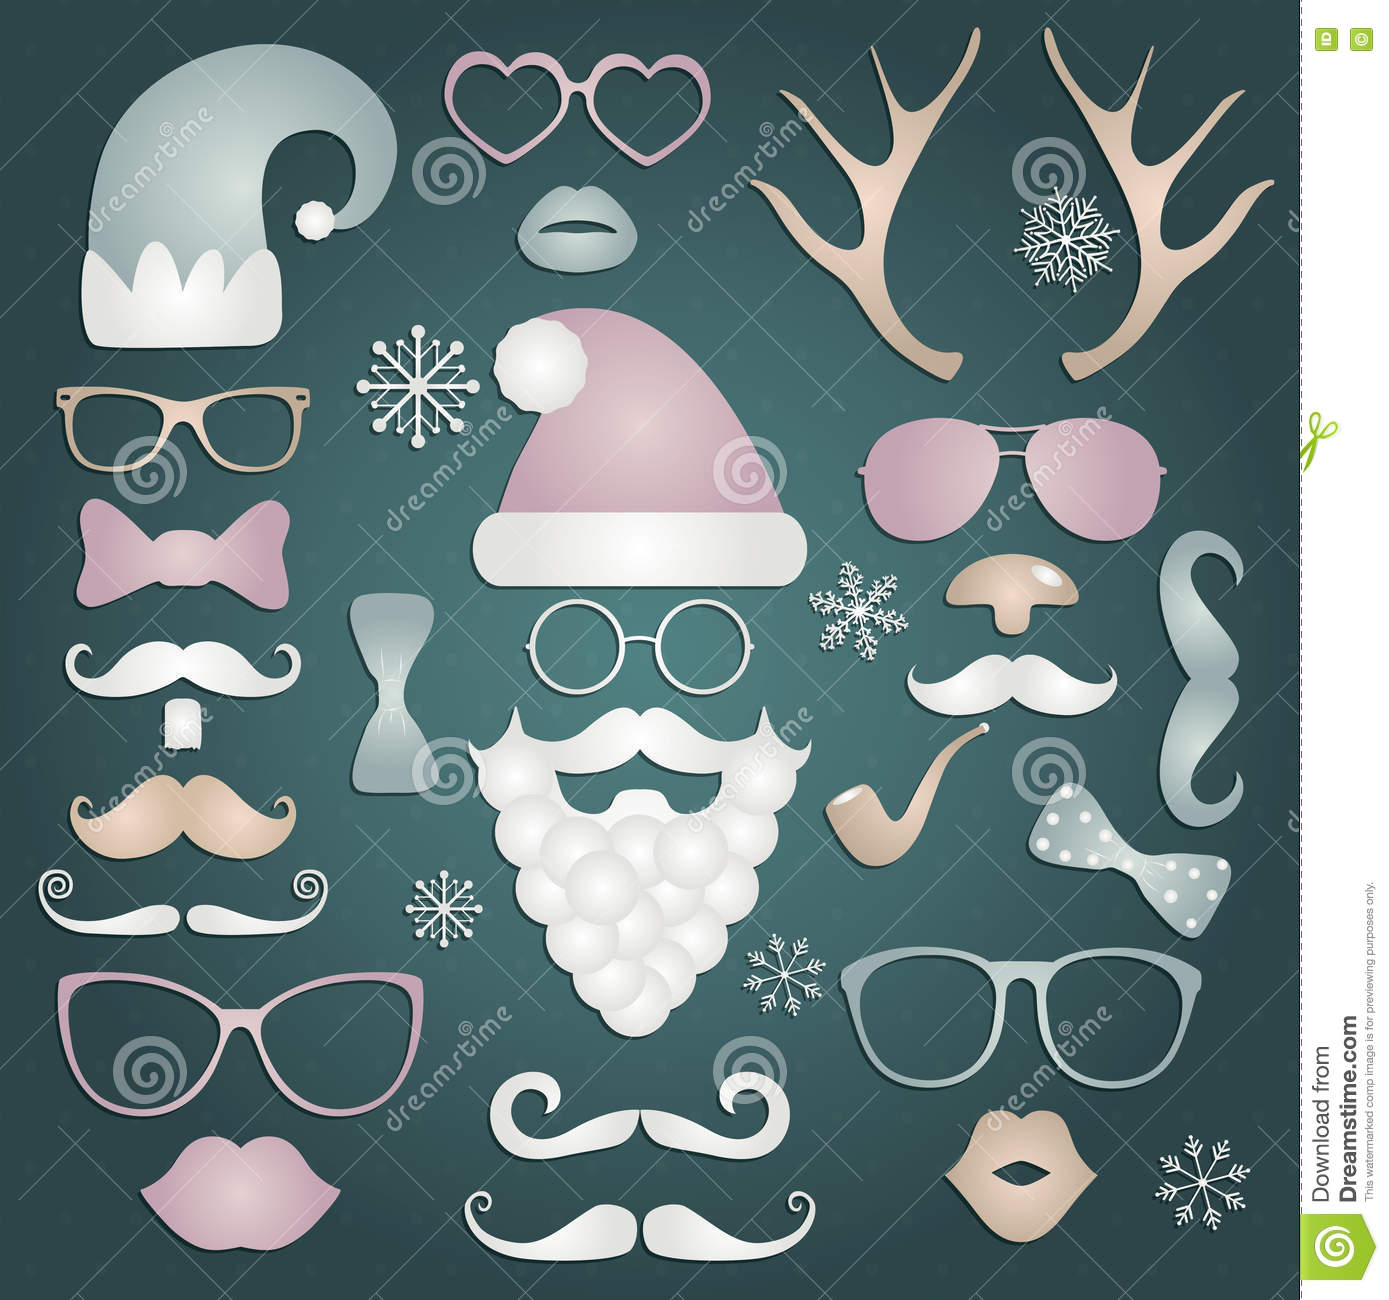 Christmas Colorful Fashion Silhouette Set Hipster Style Vector Illustration